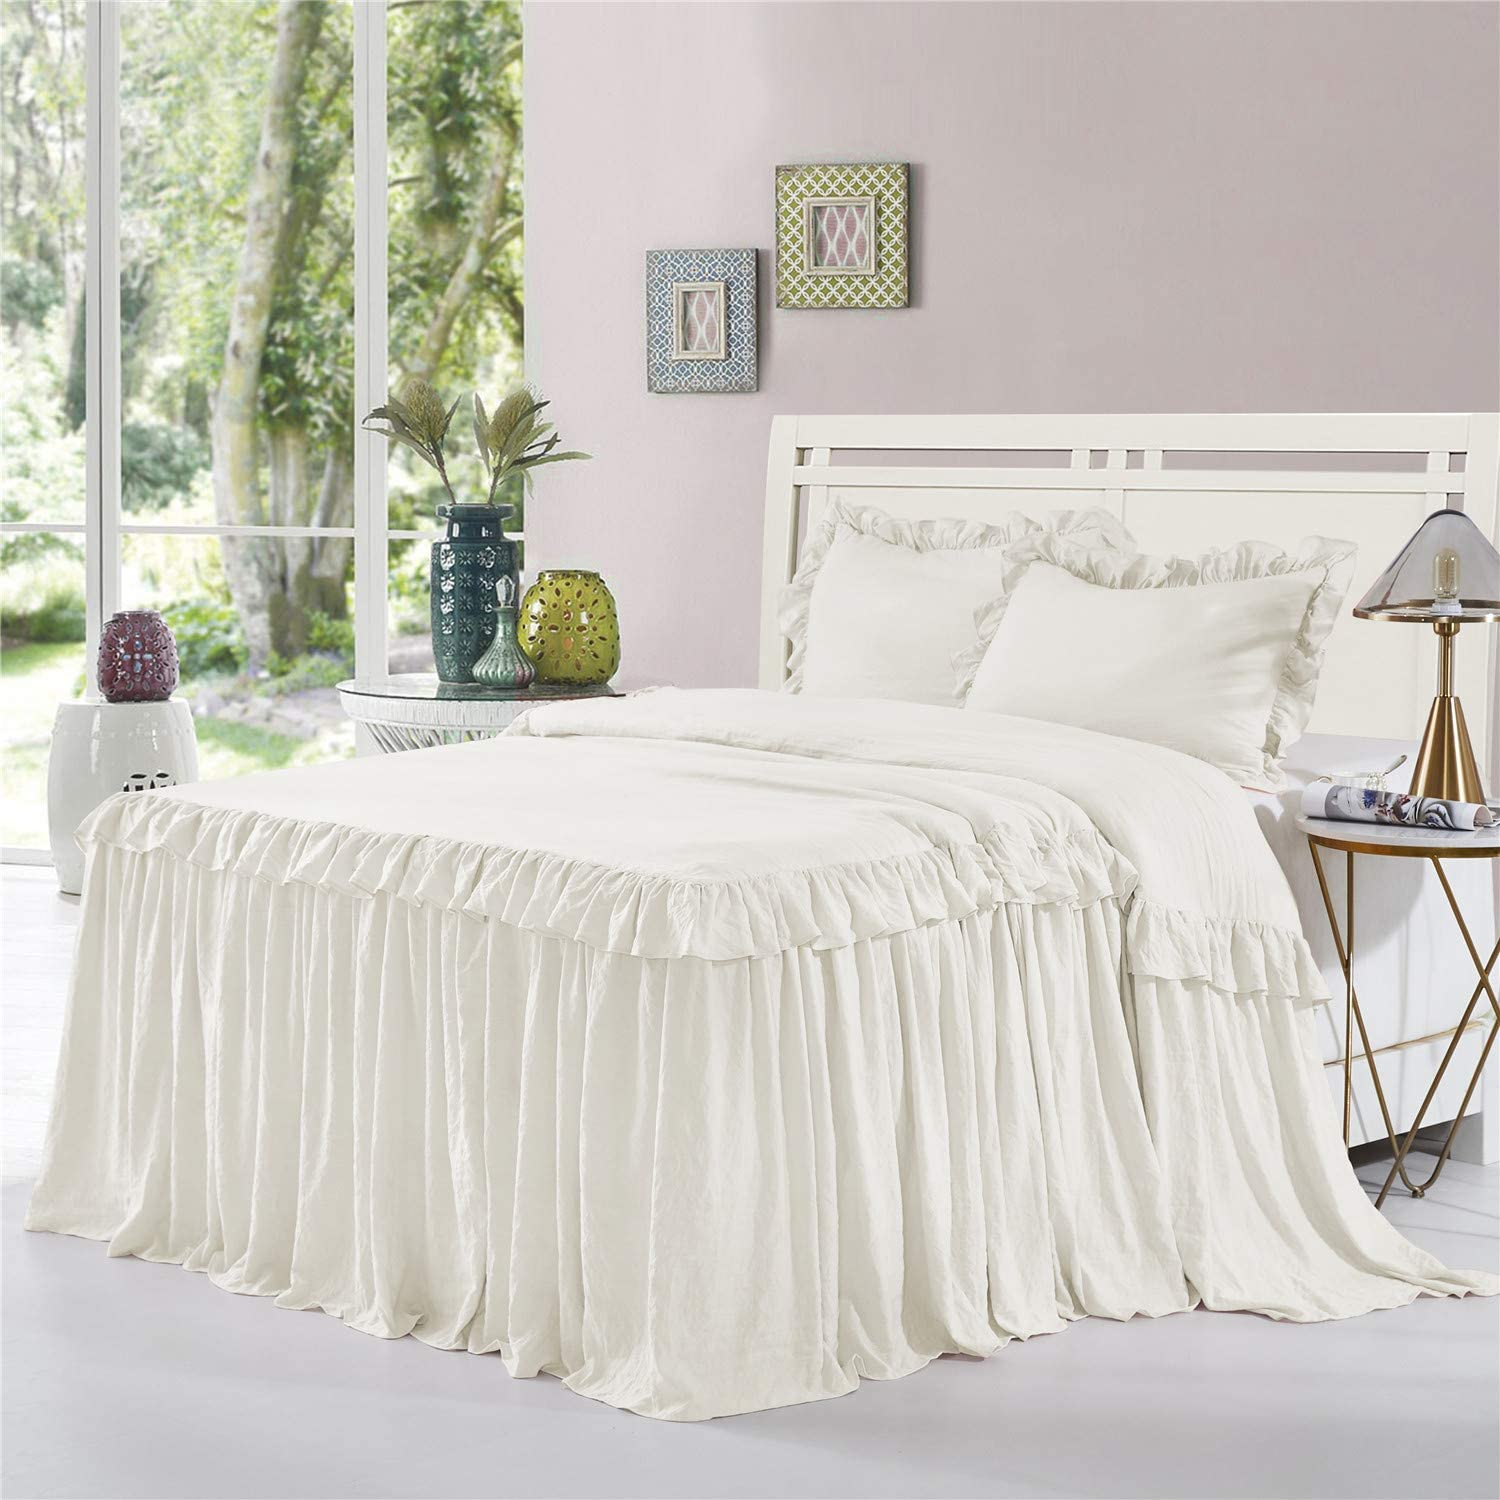 HIG 3 Piece Ruffle Skirt Bedspread Set King-Ivory Color 30 inches Drop Ruffled Style Bed Skirt Coverlets Bedspreads Dust Ruffles- Alina Bedding Collections King Size-1 Bedspread, 2 Standard Shams